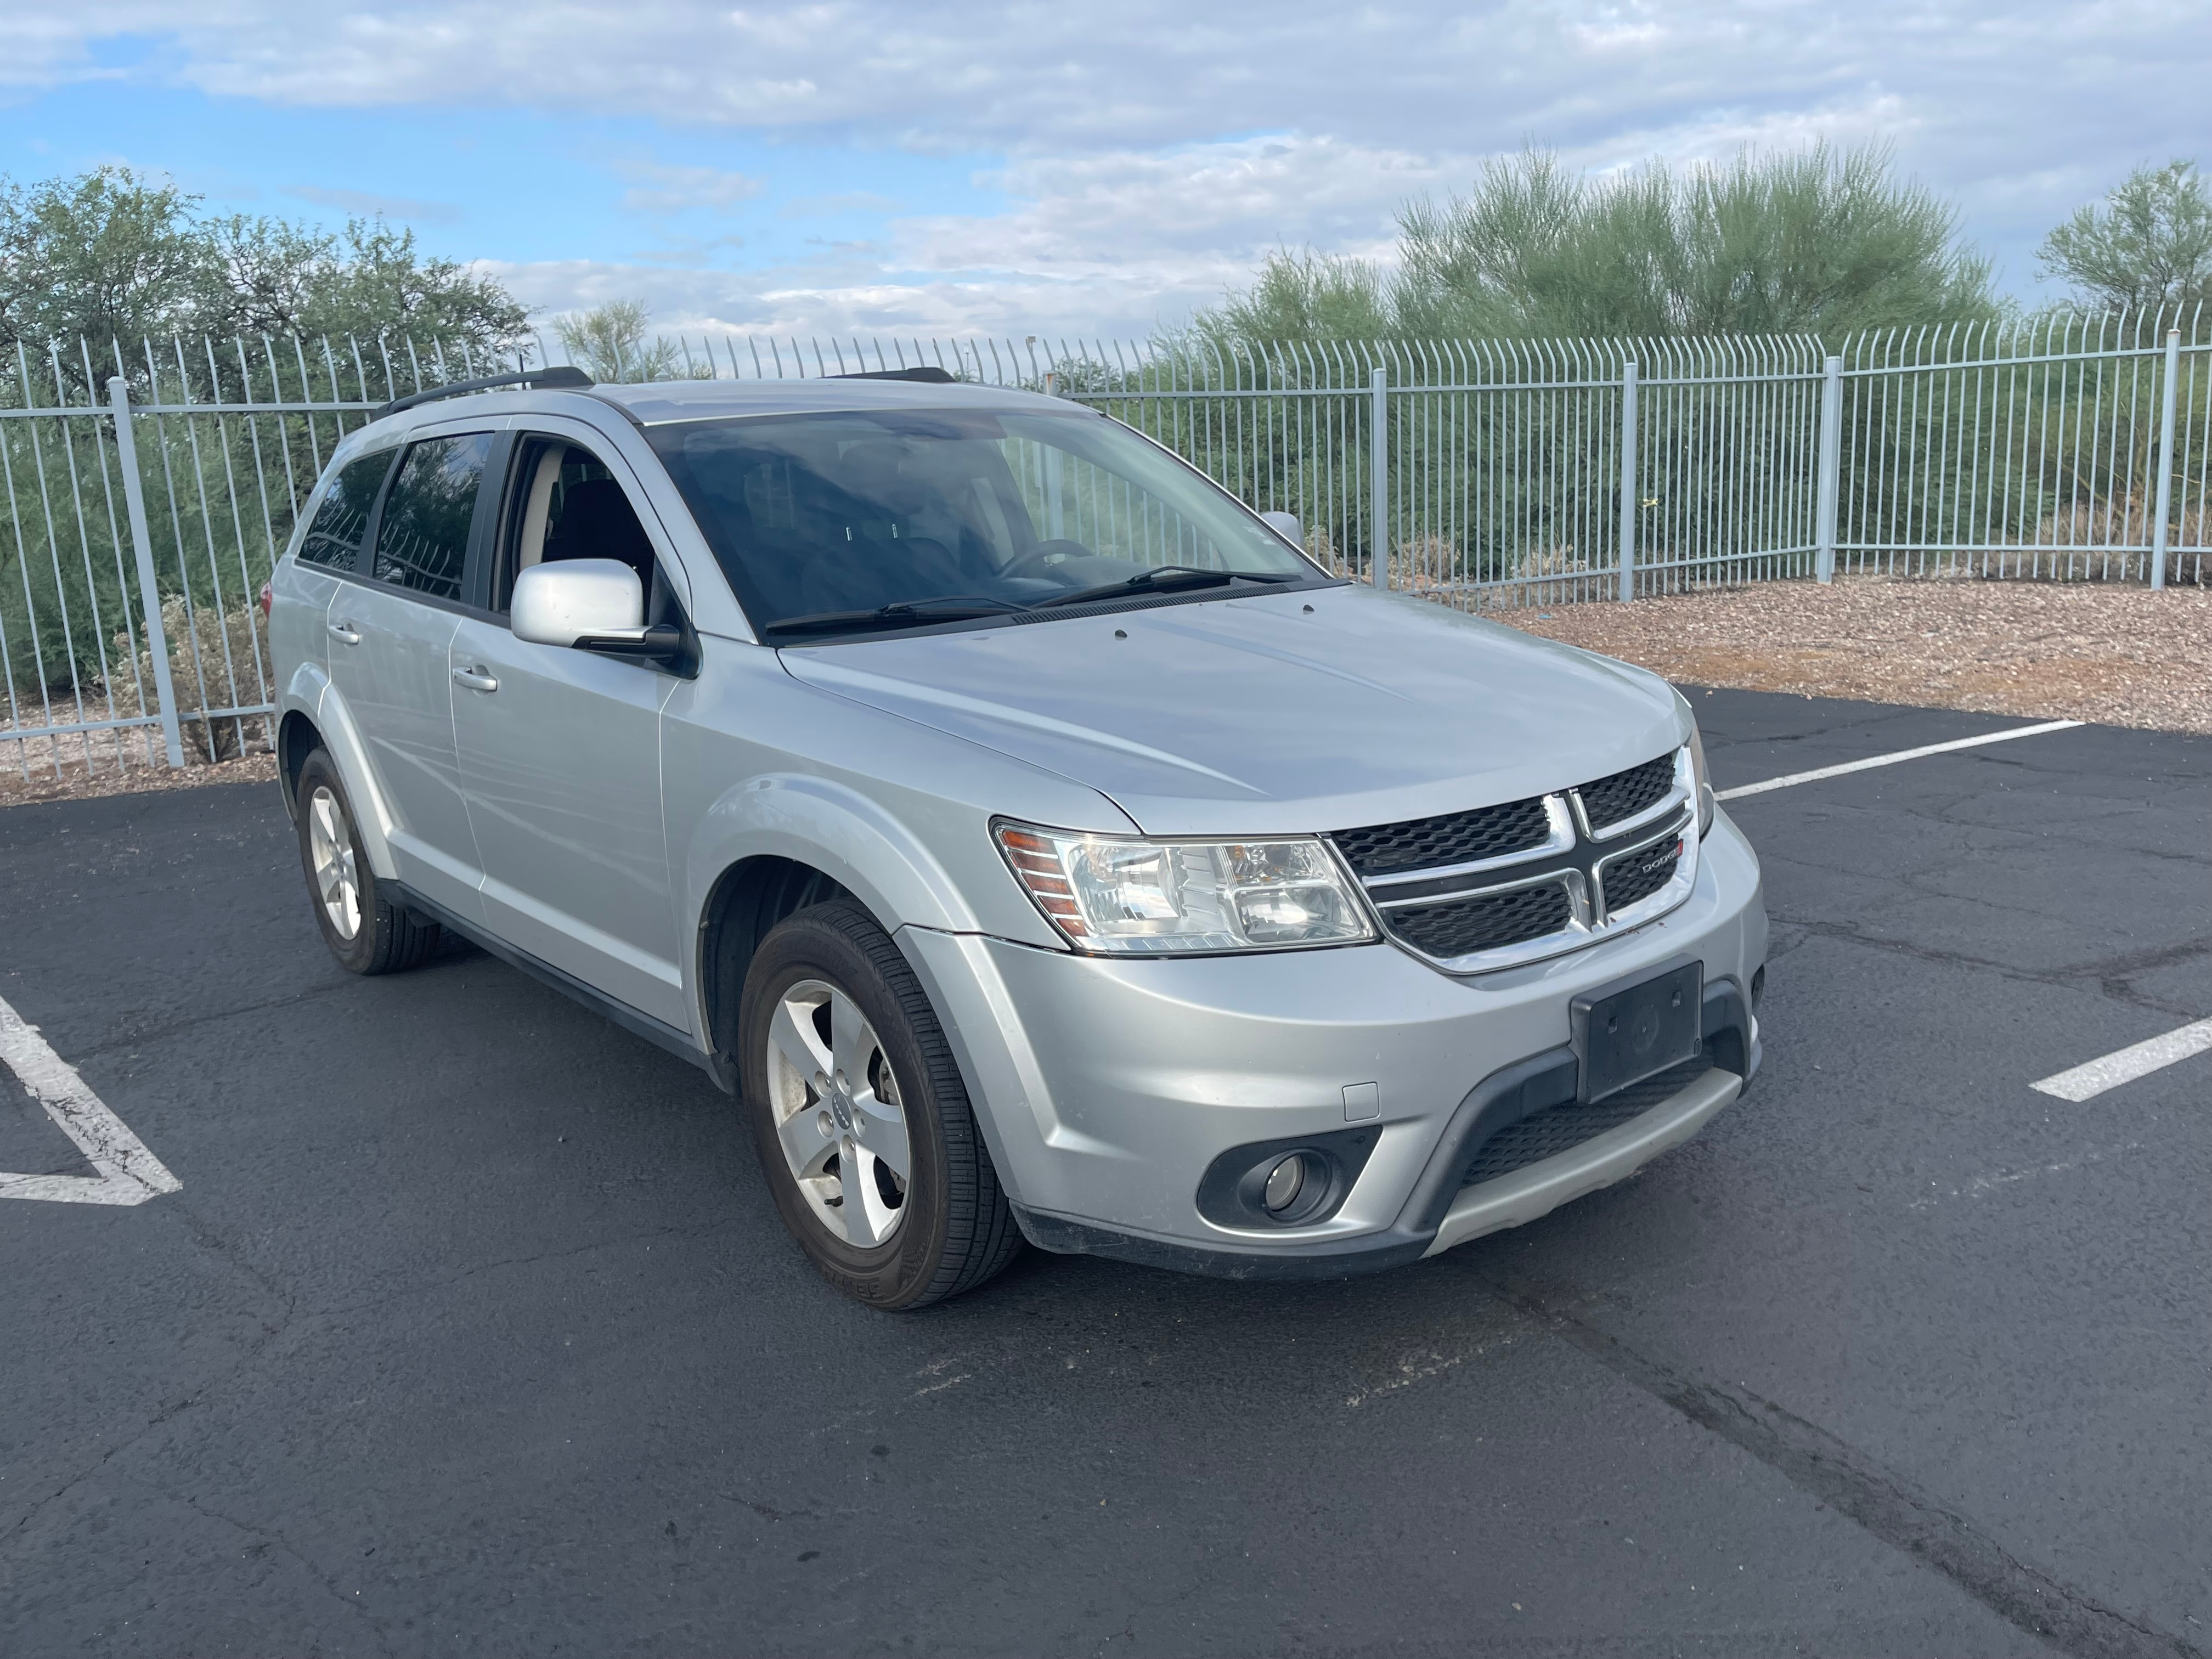 2012 dodge journey for sale in tucson